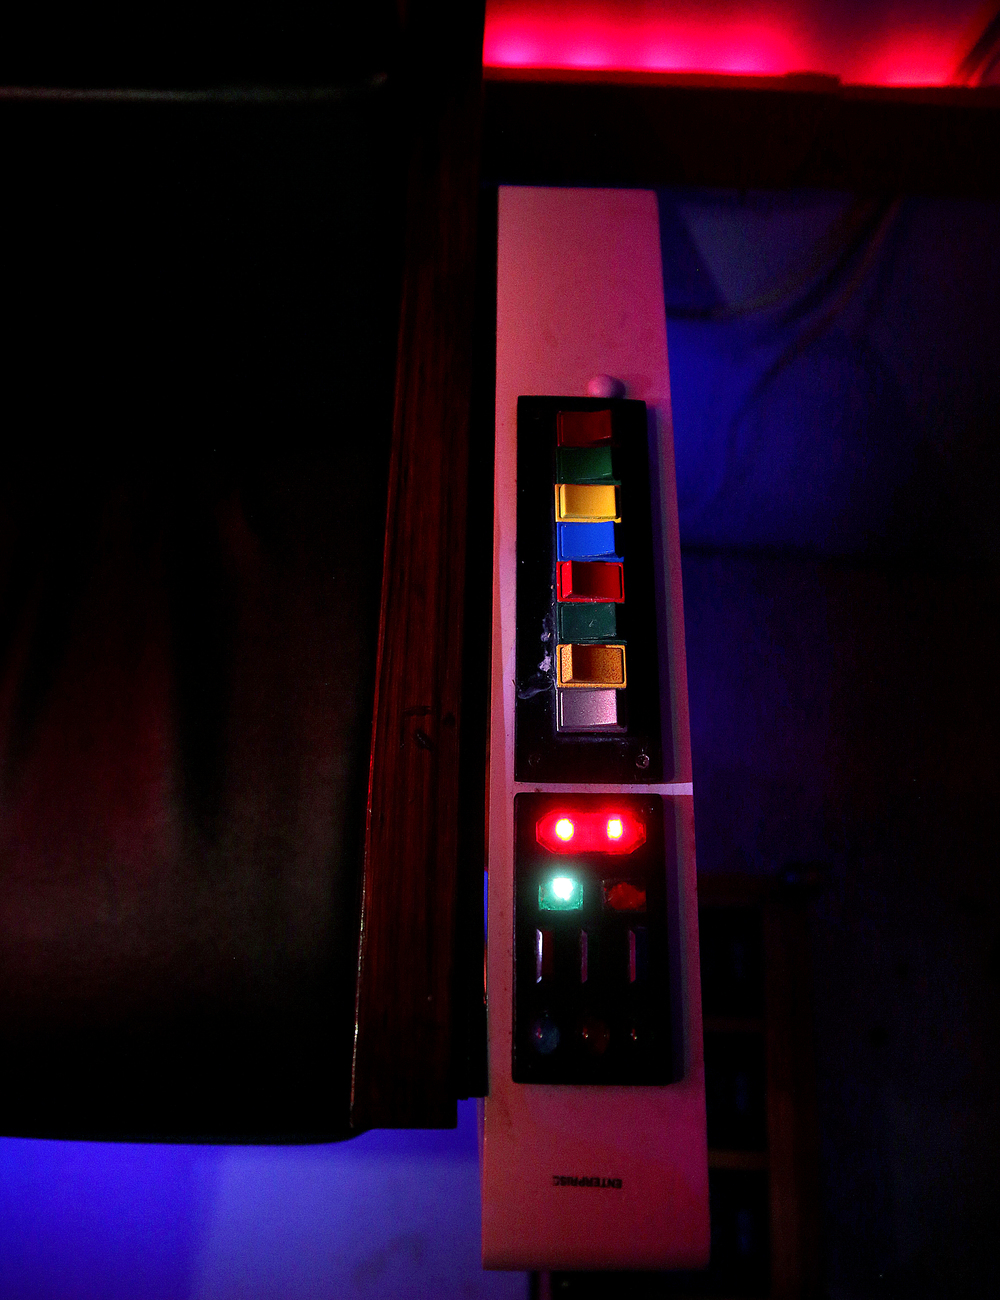 A close-up shows control buttons on one arm of Captain Kirk's chair in the man cave, seen here on Friday, Jan. 29, 2016. David Spencer/The State Journal Register